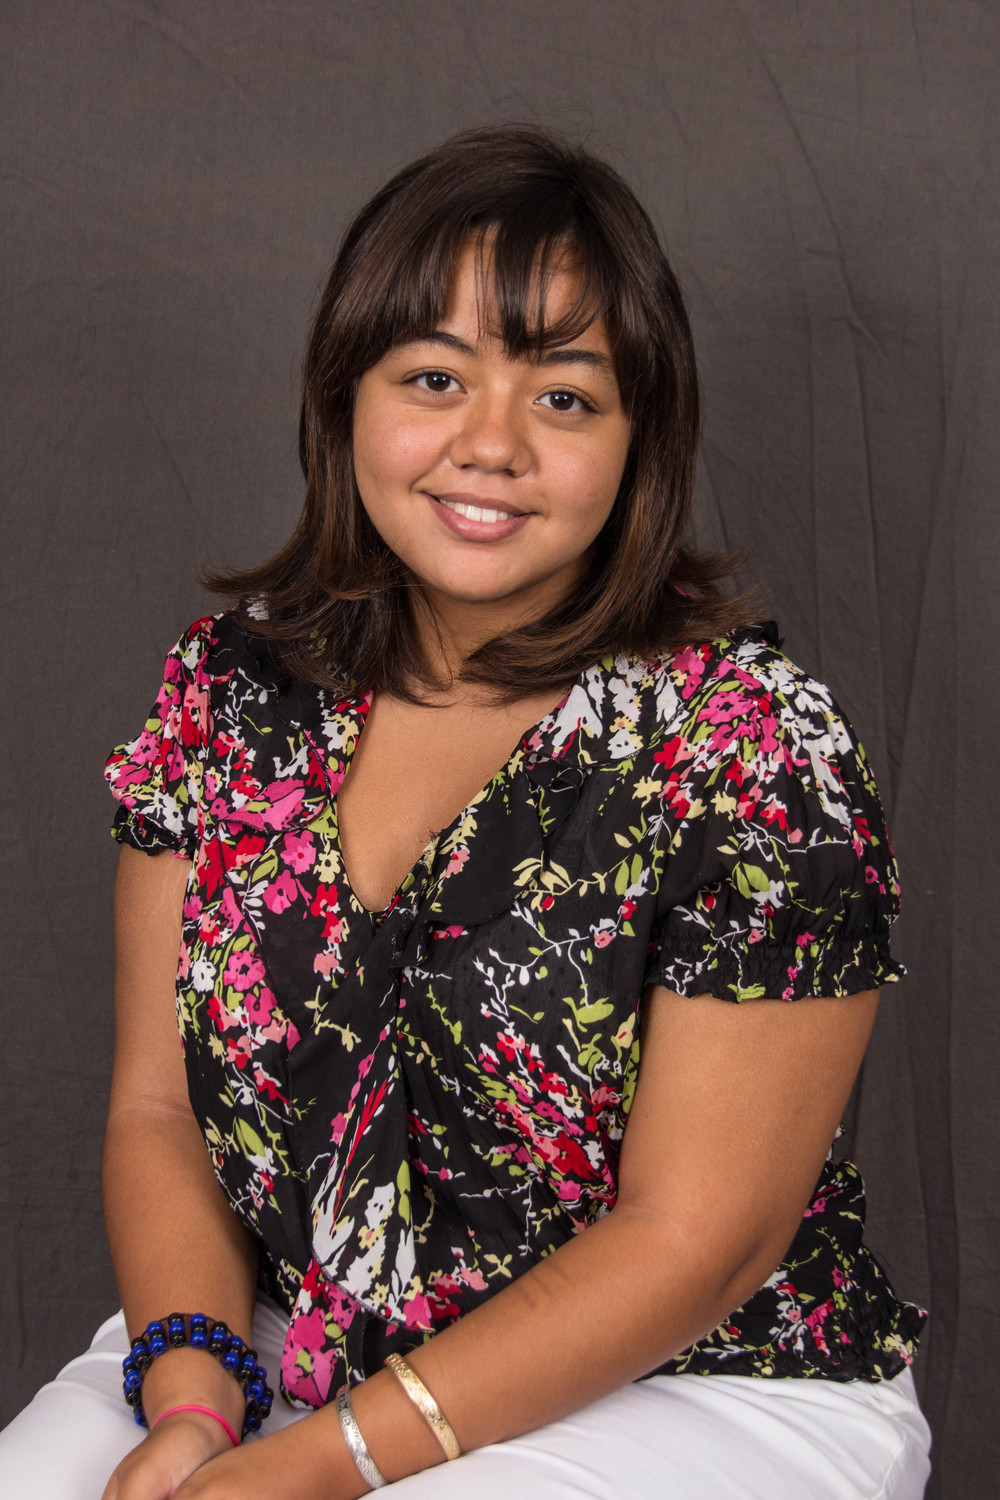 """""""CTL hasshowedme how I can change my community it gave me simple steps to aligning my actions with my beliefs.I see myself breaking social barriers."""" Star Kaohu-Scorce   CTL Class of 2012   Nanakuli High School"""